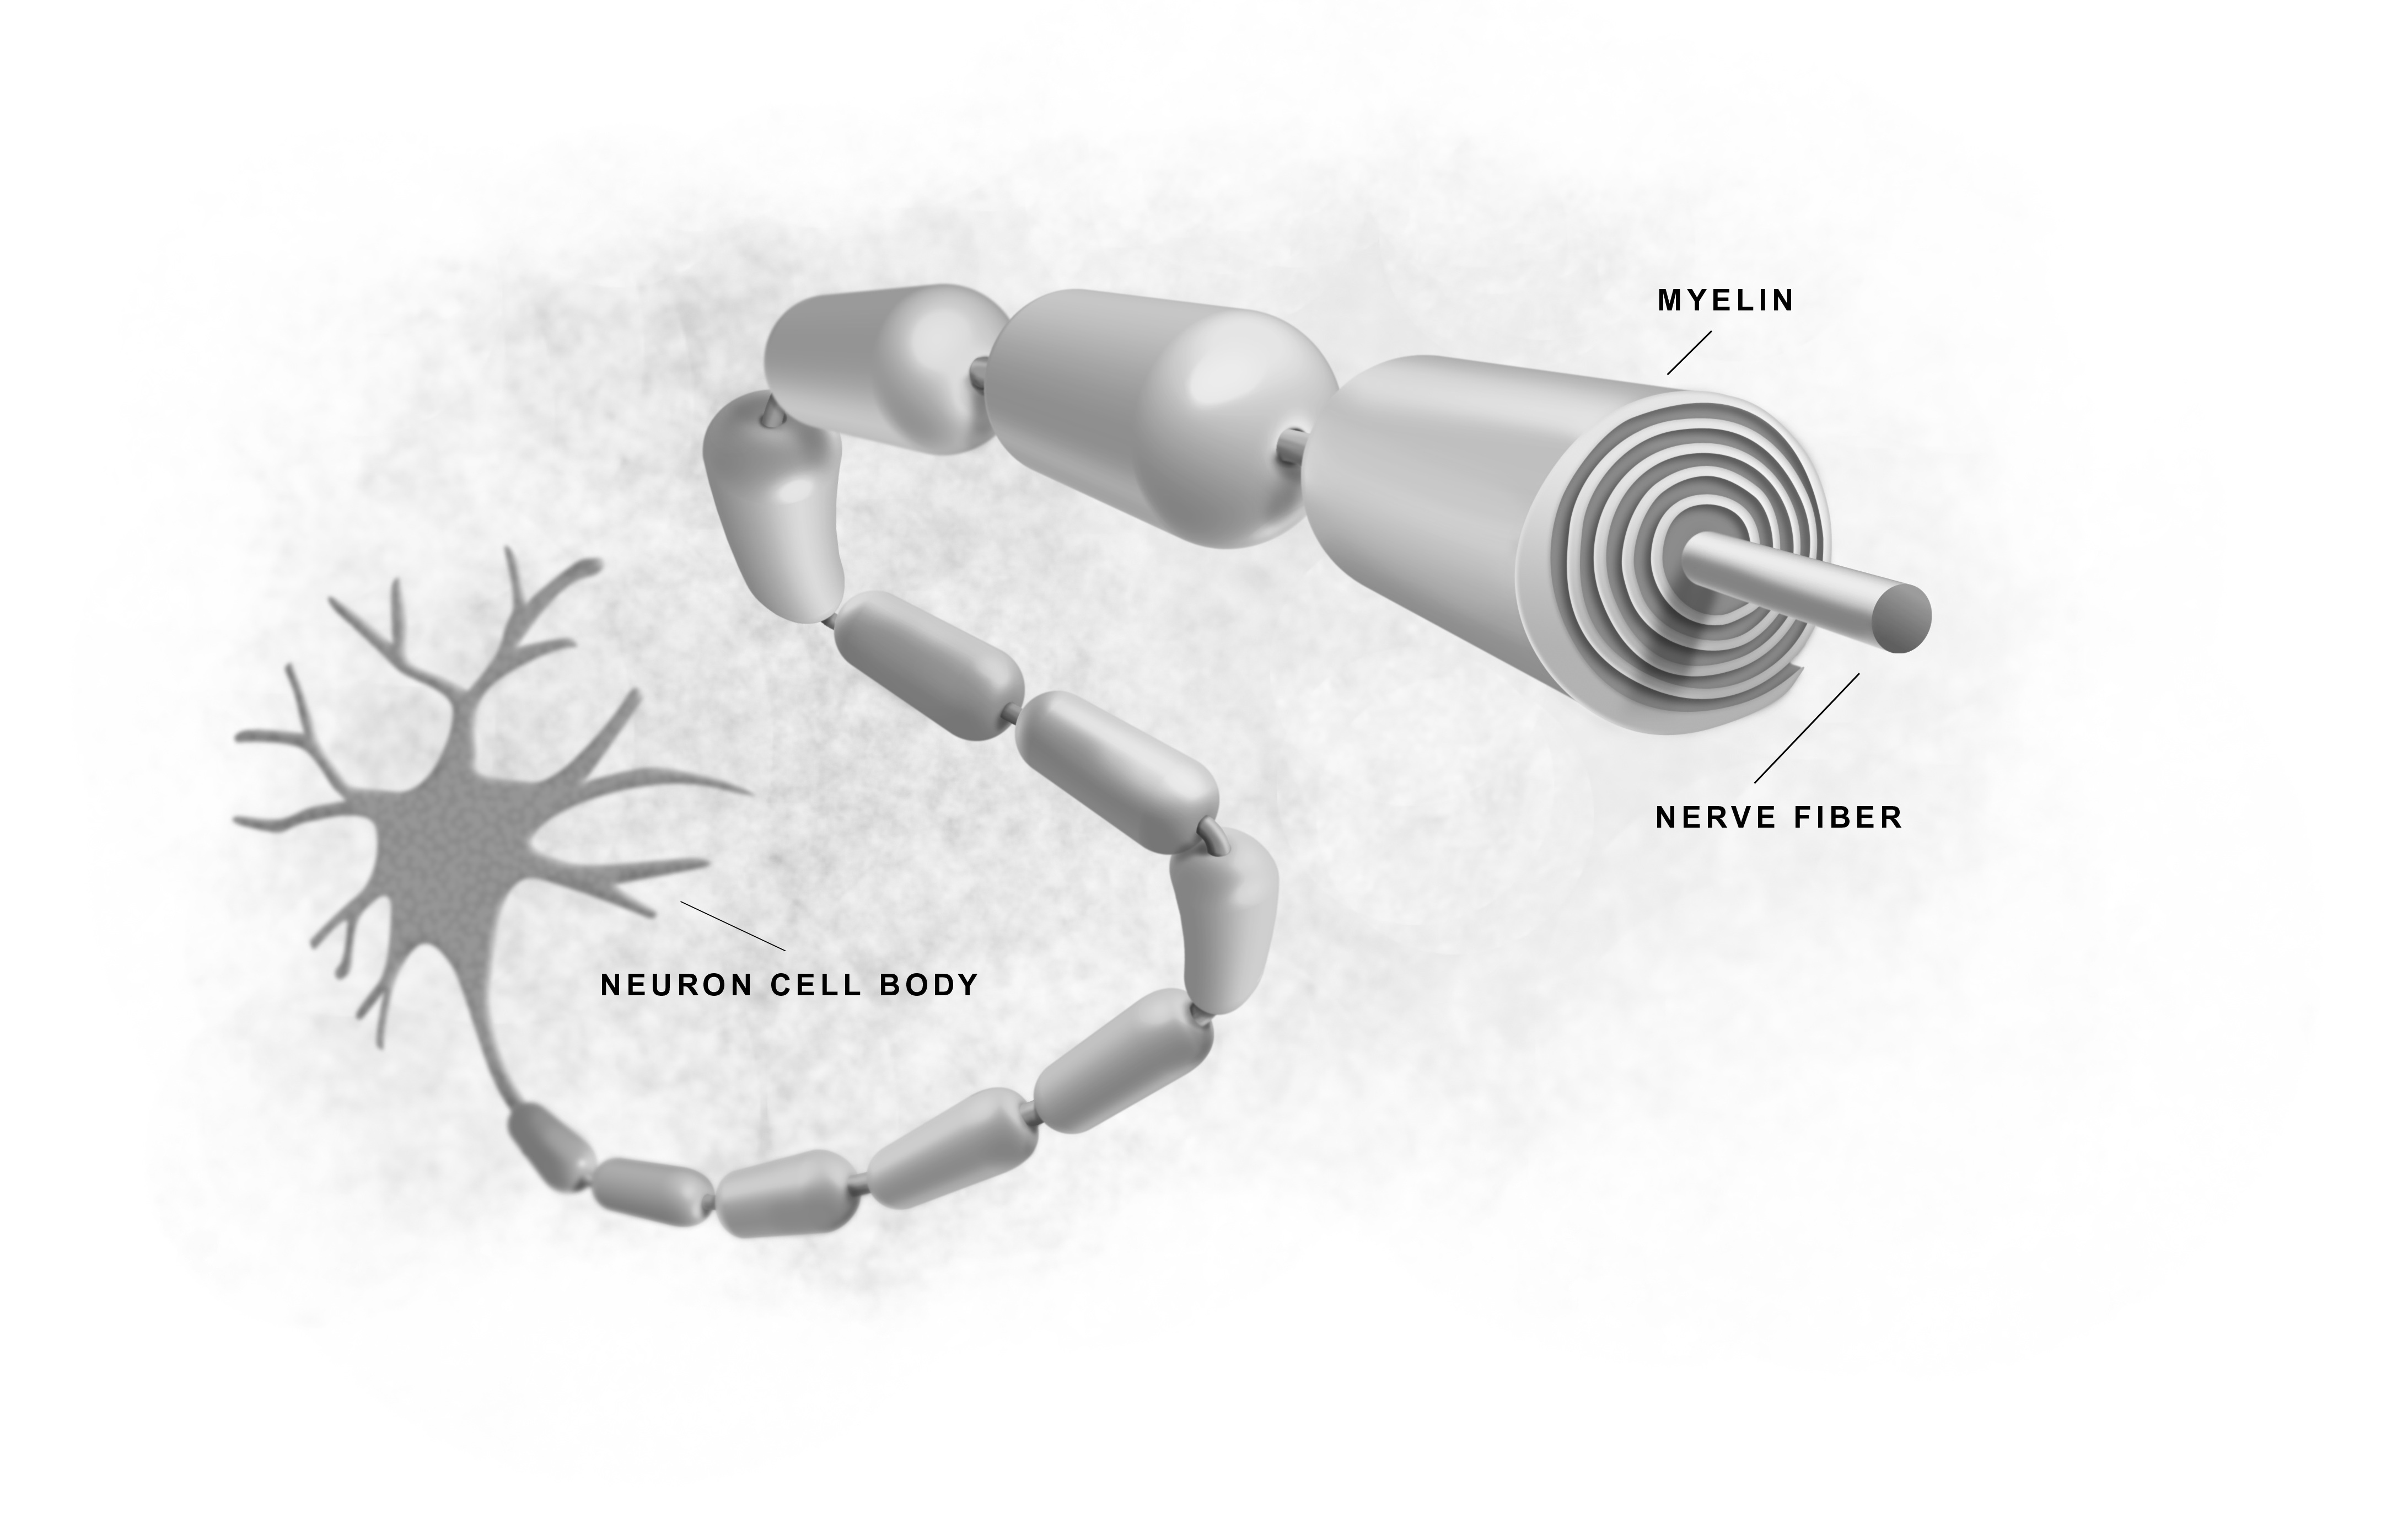 Solidification comes from more myelin along axon of neurons